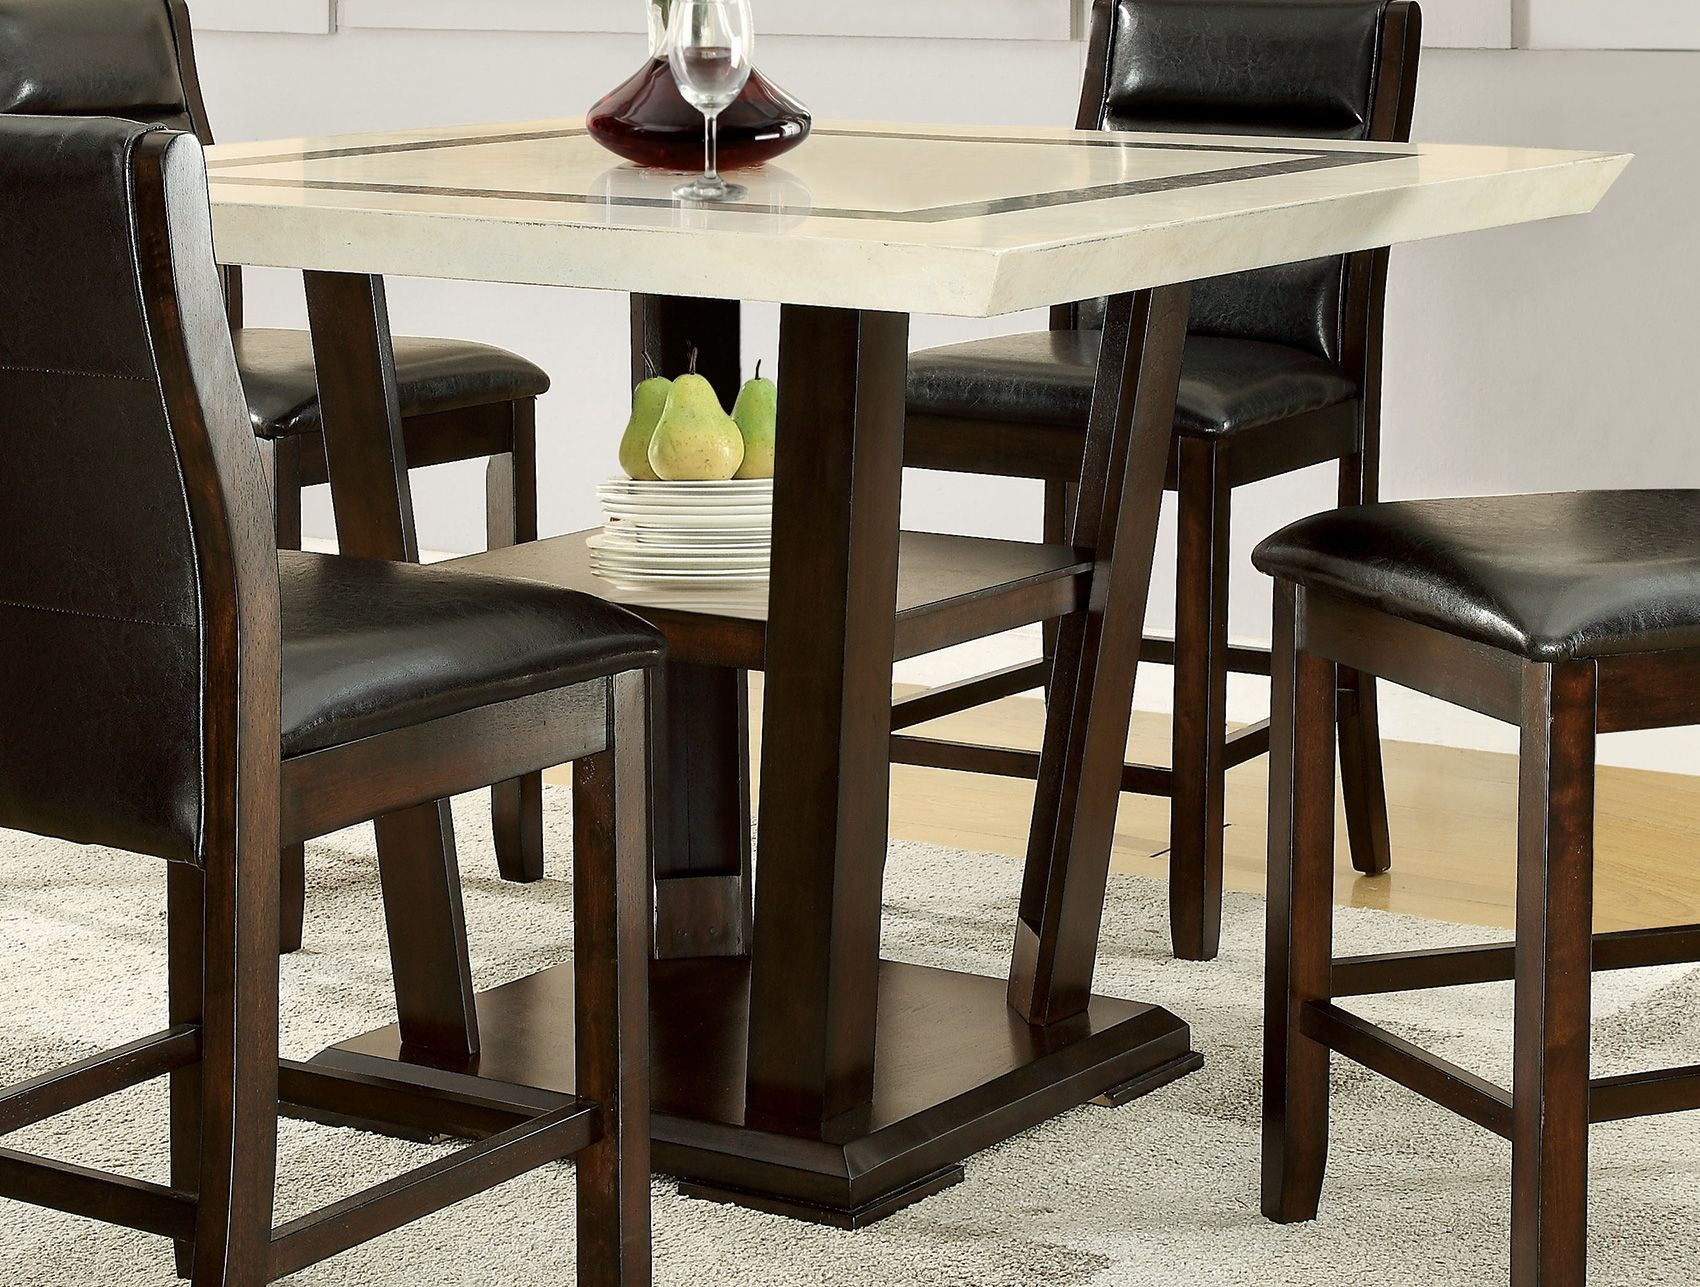 Counter Height Dining Tables: Lacombe Cappuccino Rectangular Counter Height Dining Table